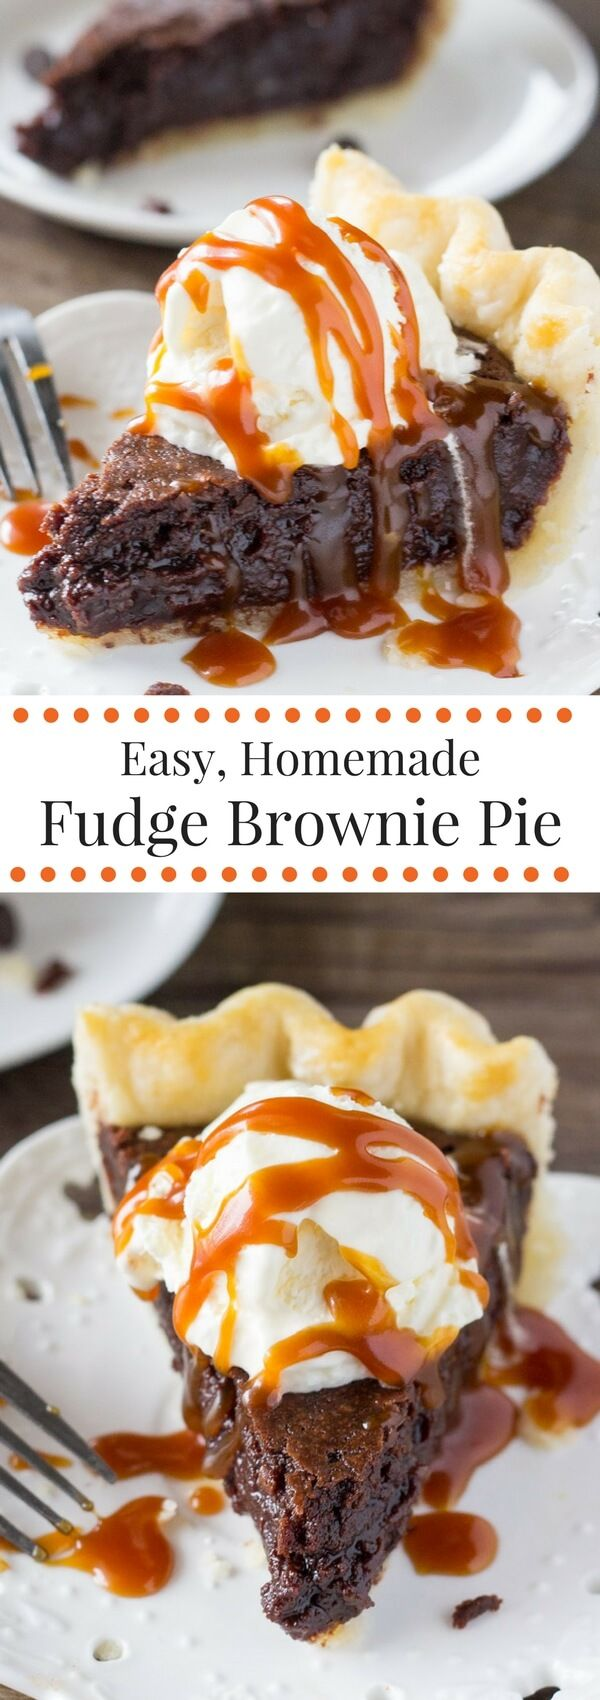 This easy, homemade Fudge Brownie Pie features a flaky, golden pie crust shell filled with the gooiest, fudgiest brownie. Serve it with ice cream & caramel sauce for the ultimate treat!